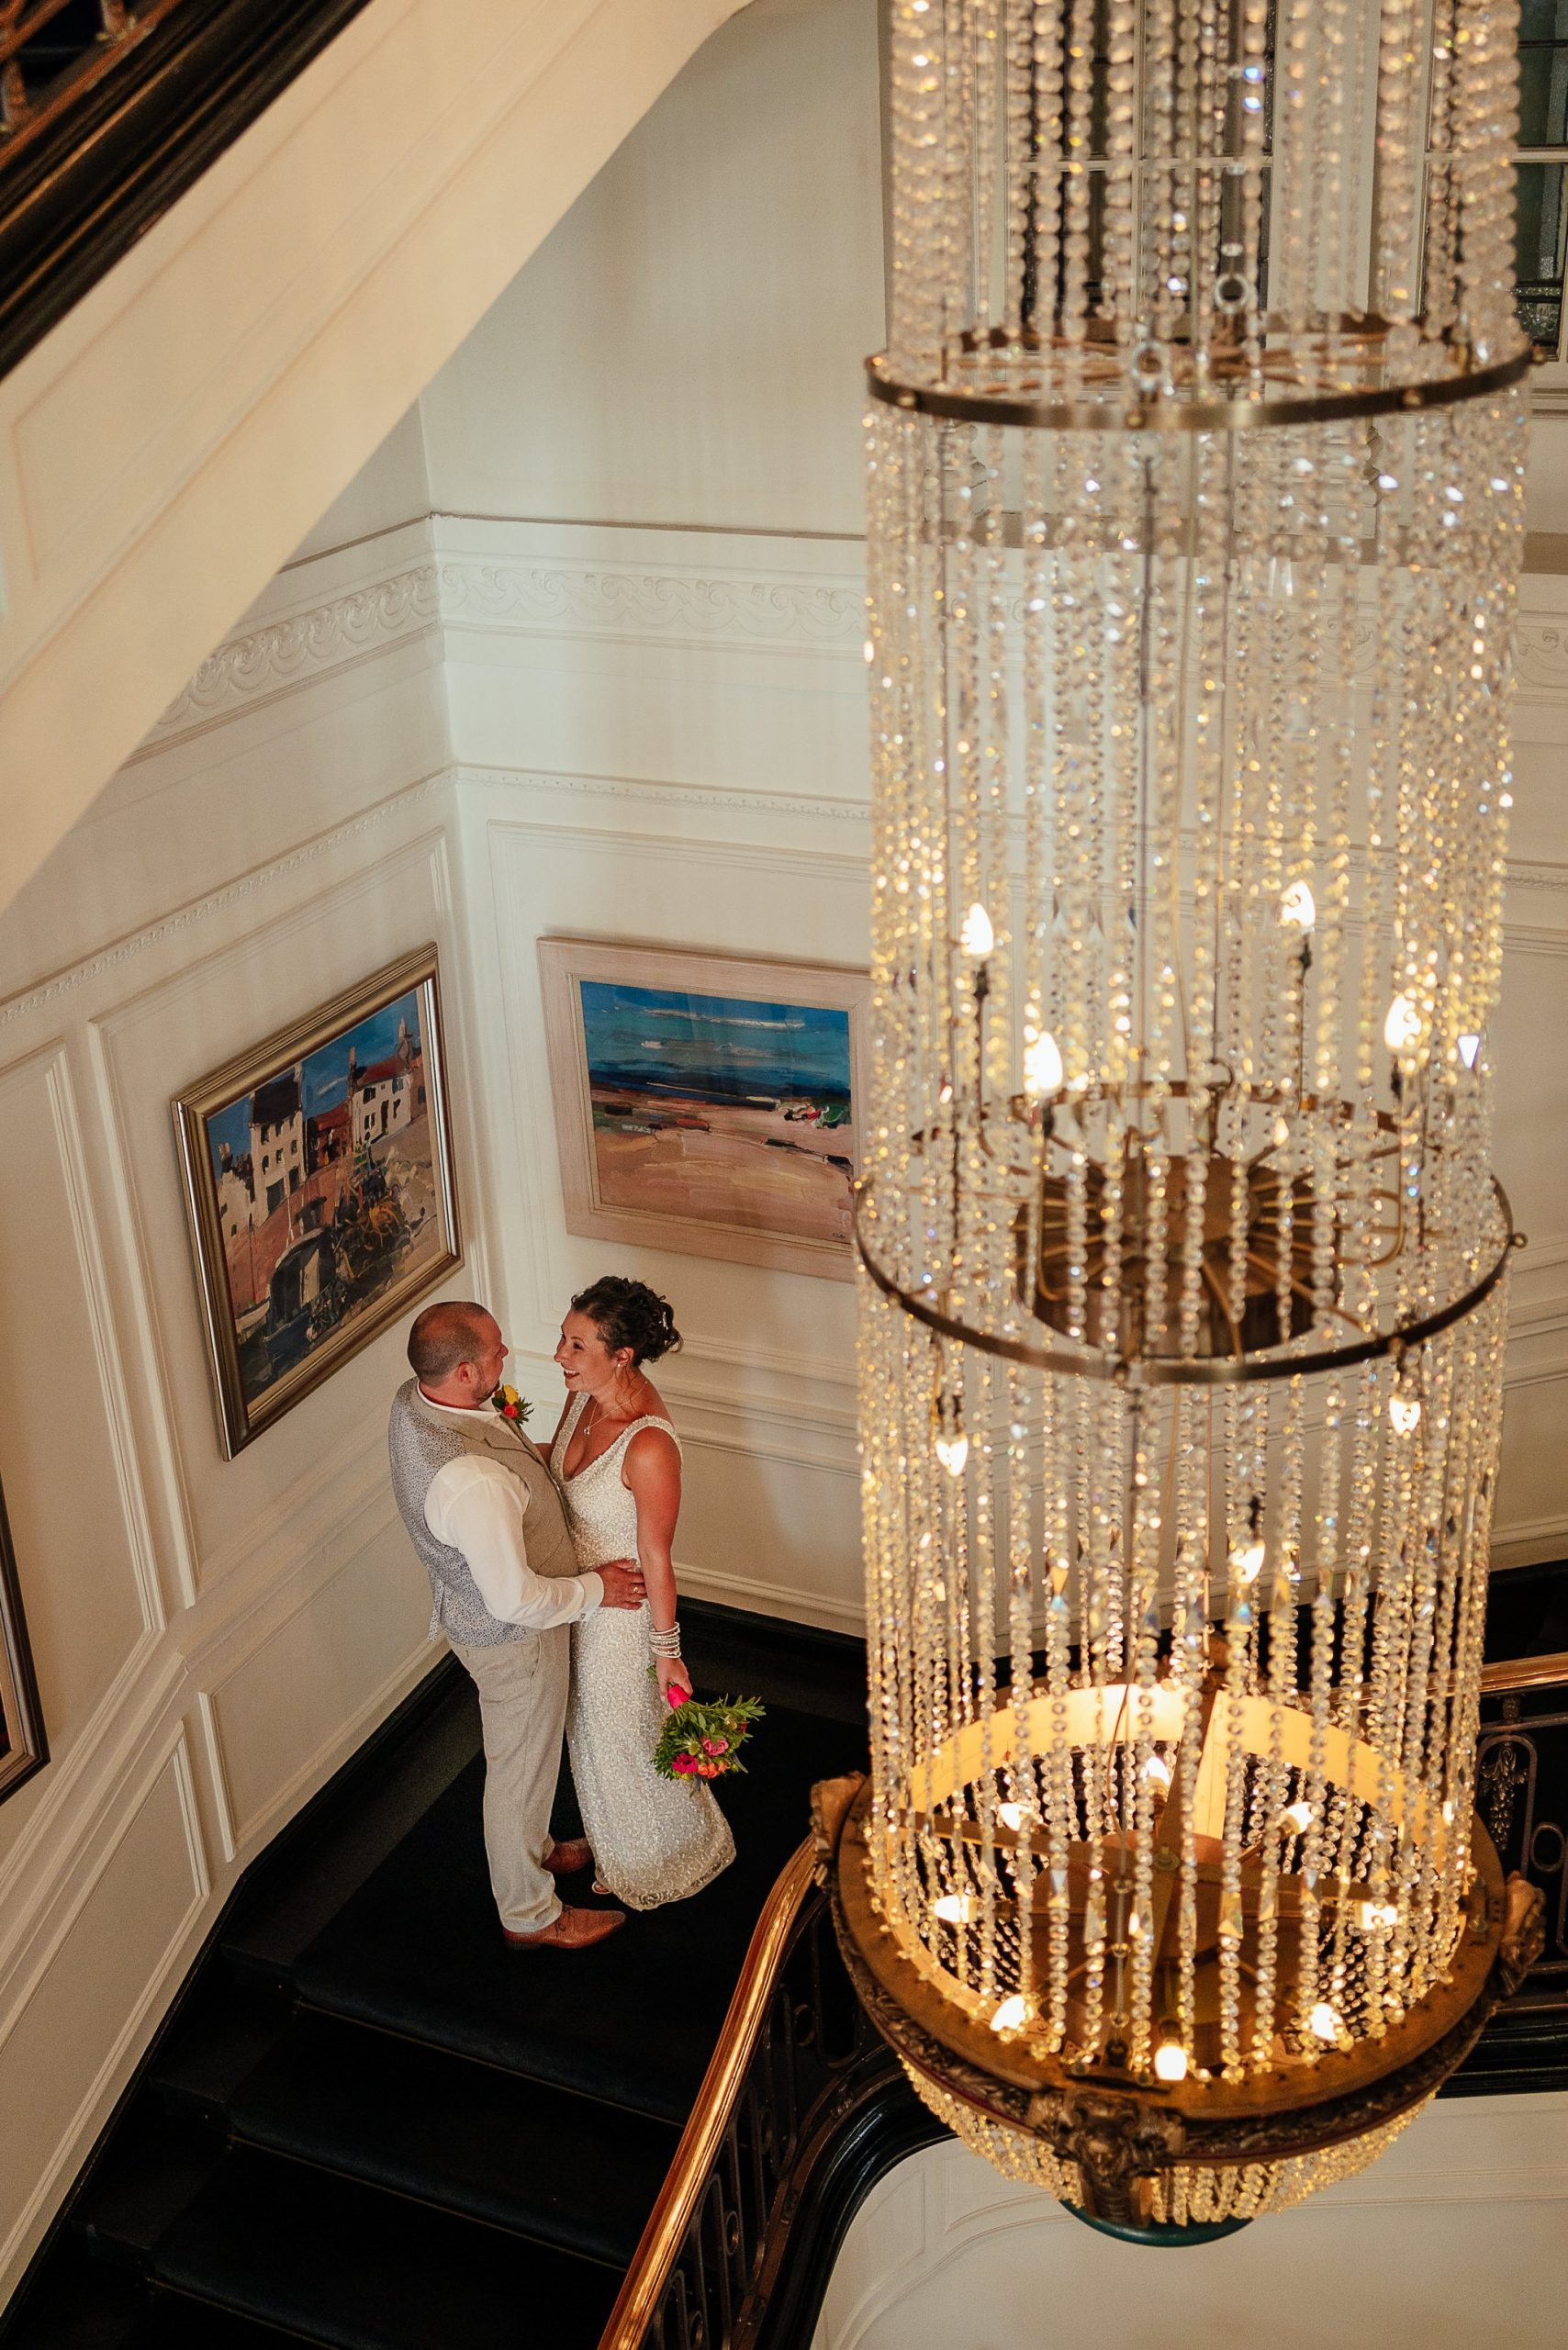 blythswood square glasgow private gardens wedding ceremony bride groom by chandelier indoors at blythswood hotel staircase